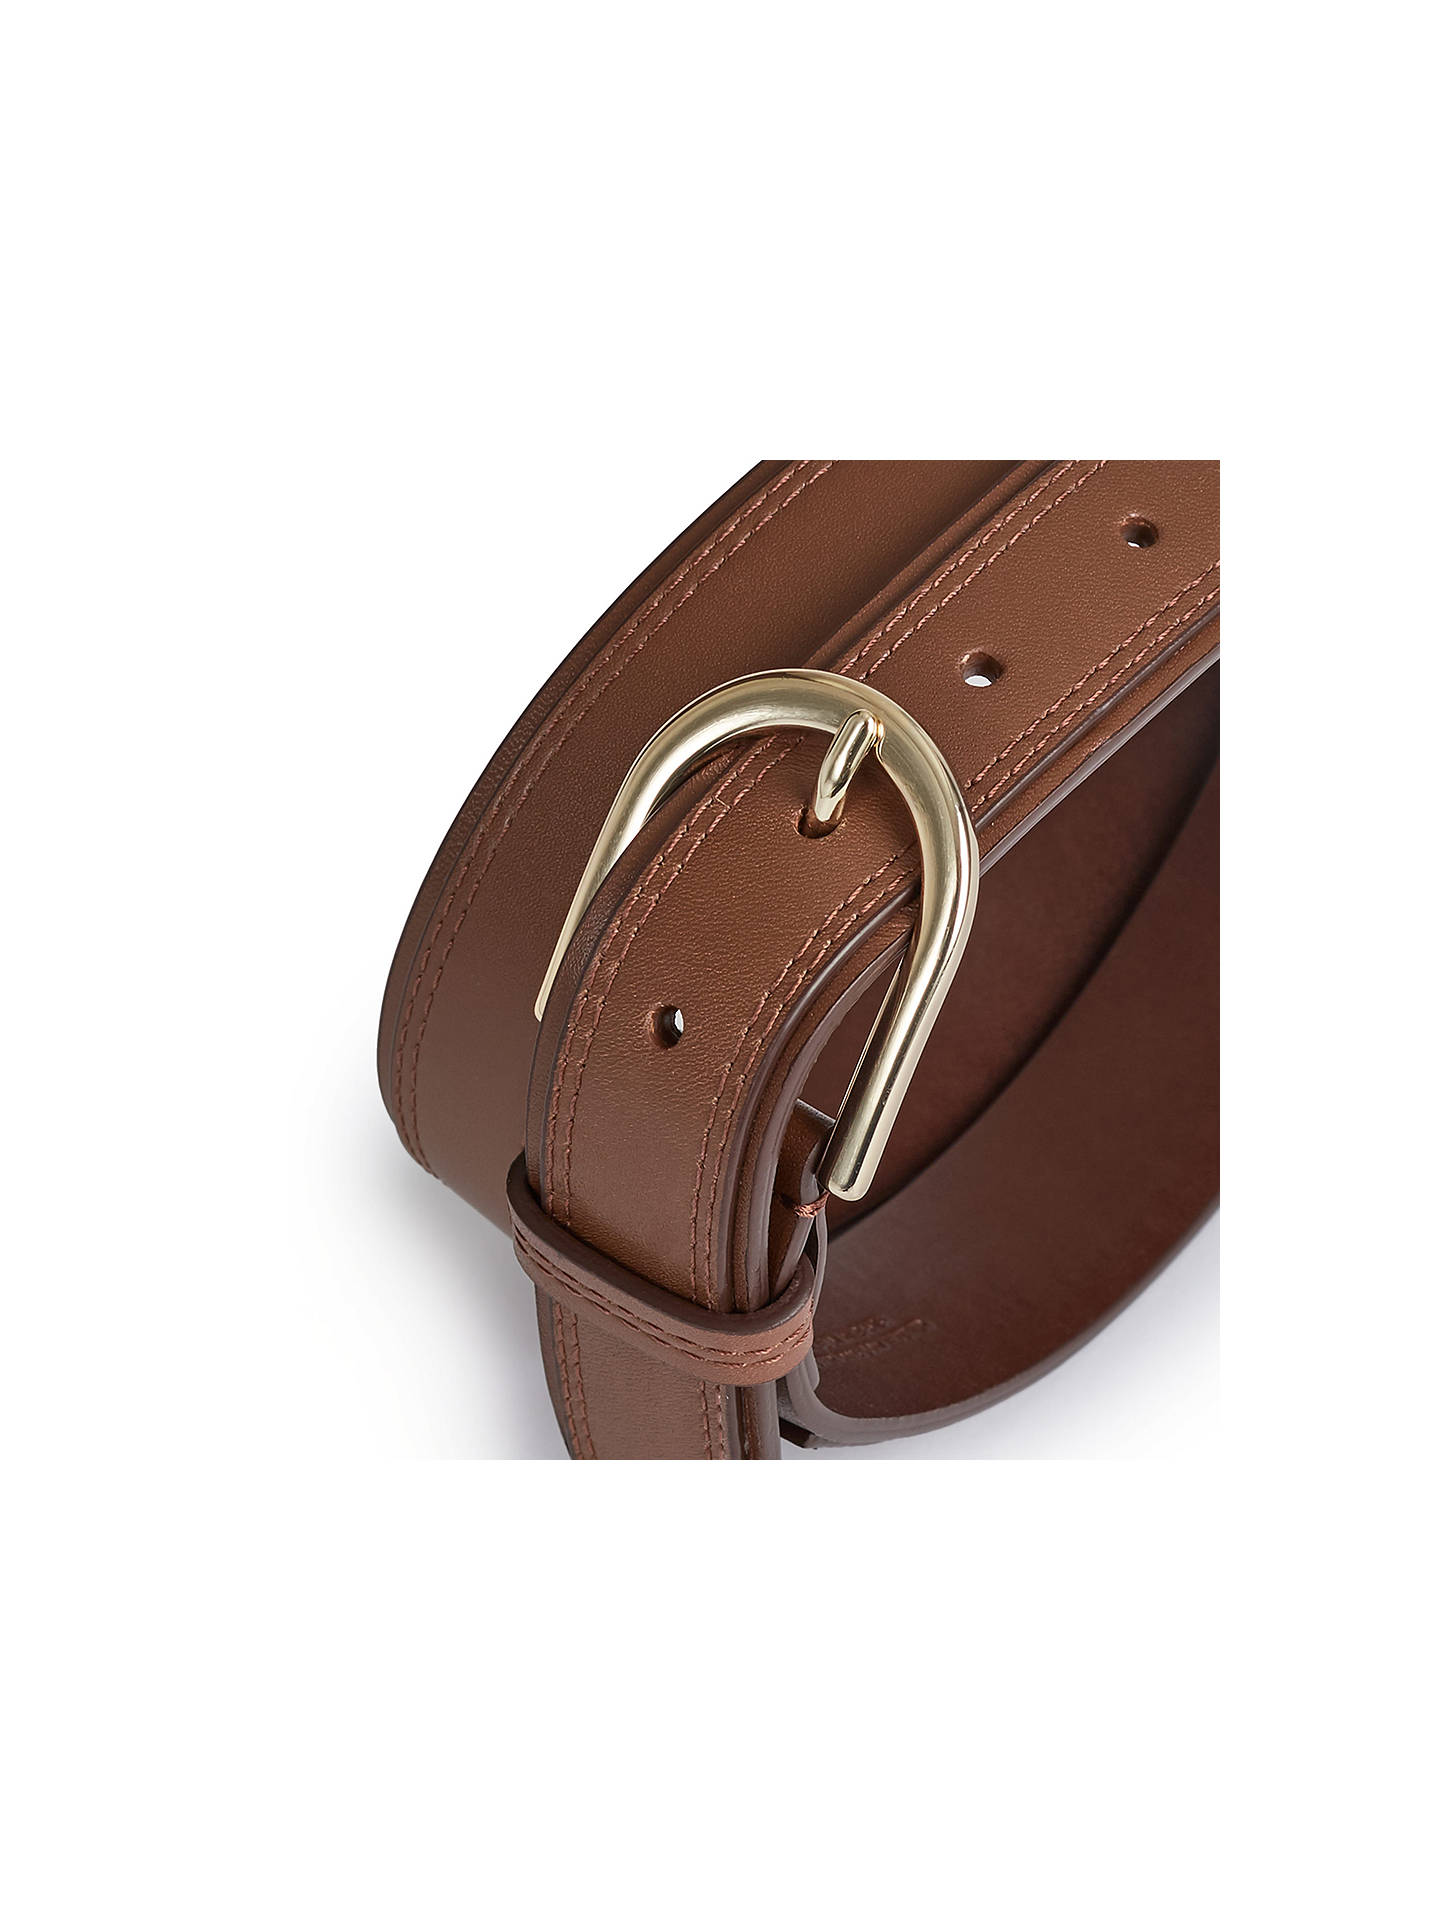 BuyReiss Viola Belt, Tan, XS Online at johnlewis.com